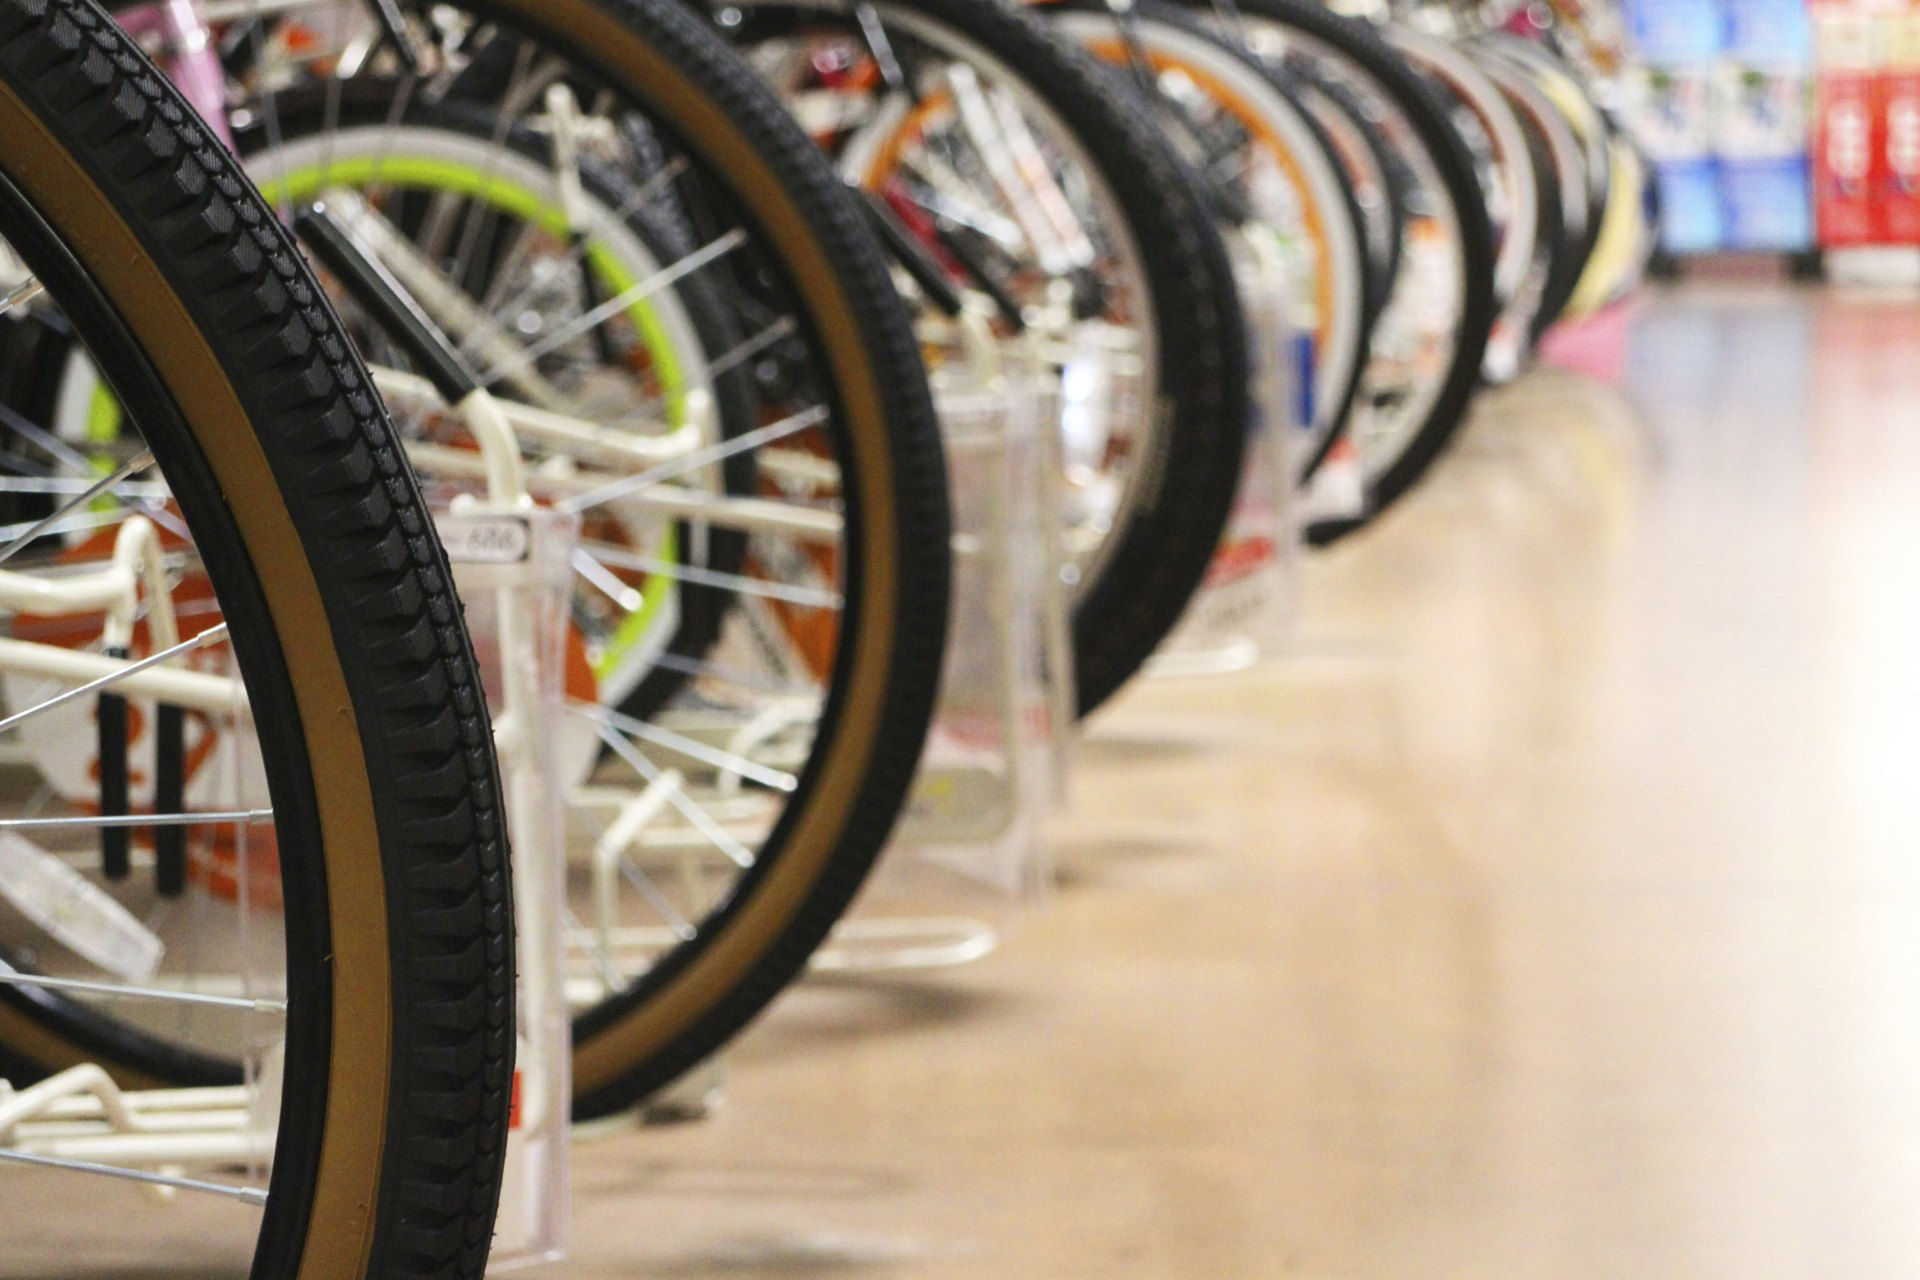 Metric conversion for bicycle tire sizes livestrong geenschuldenfo Image collections